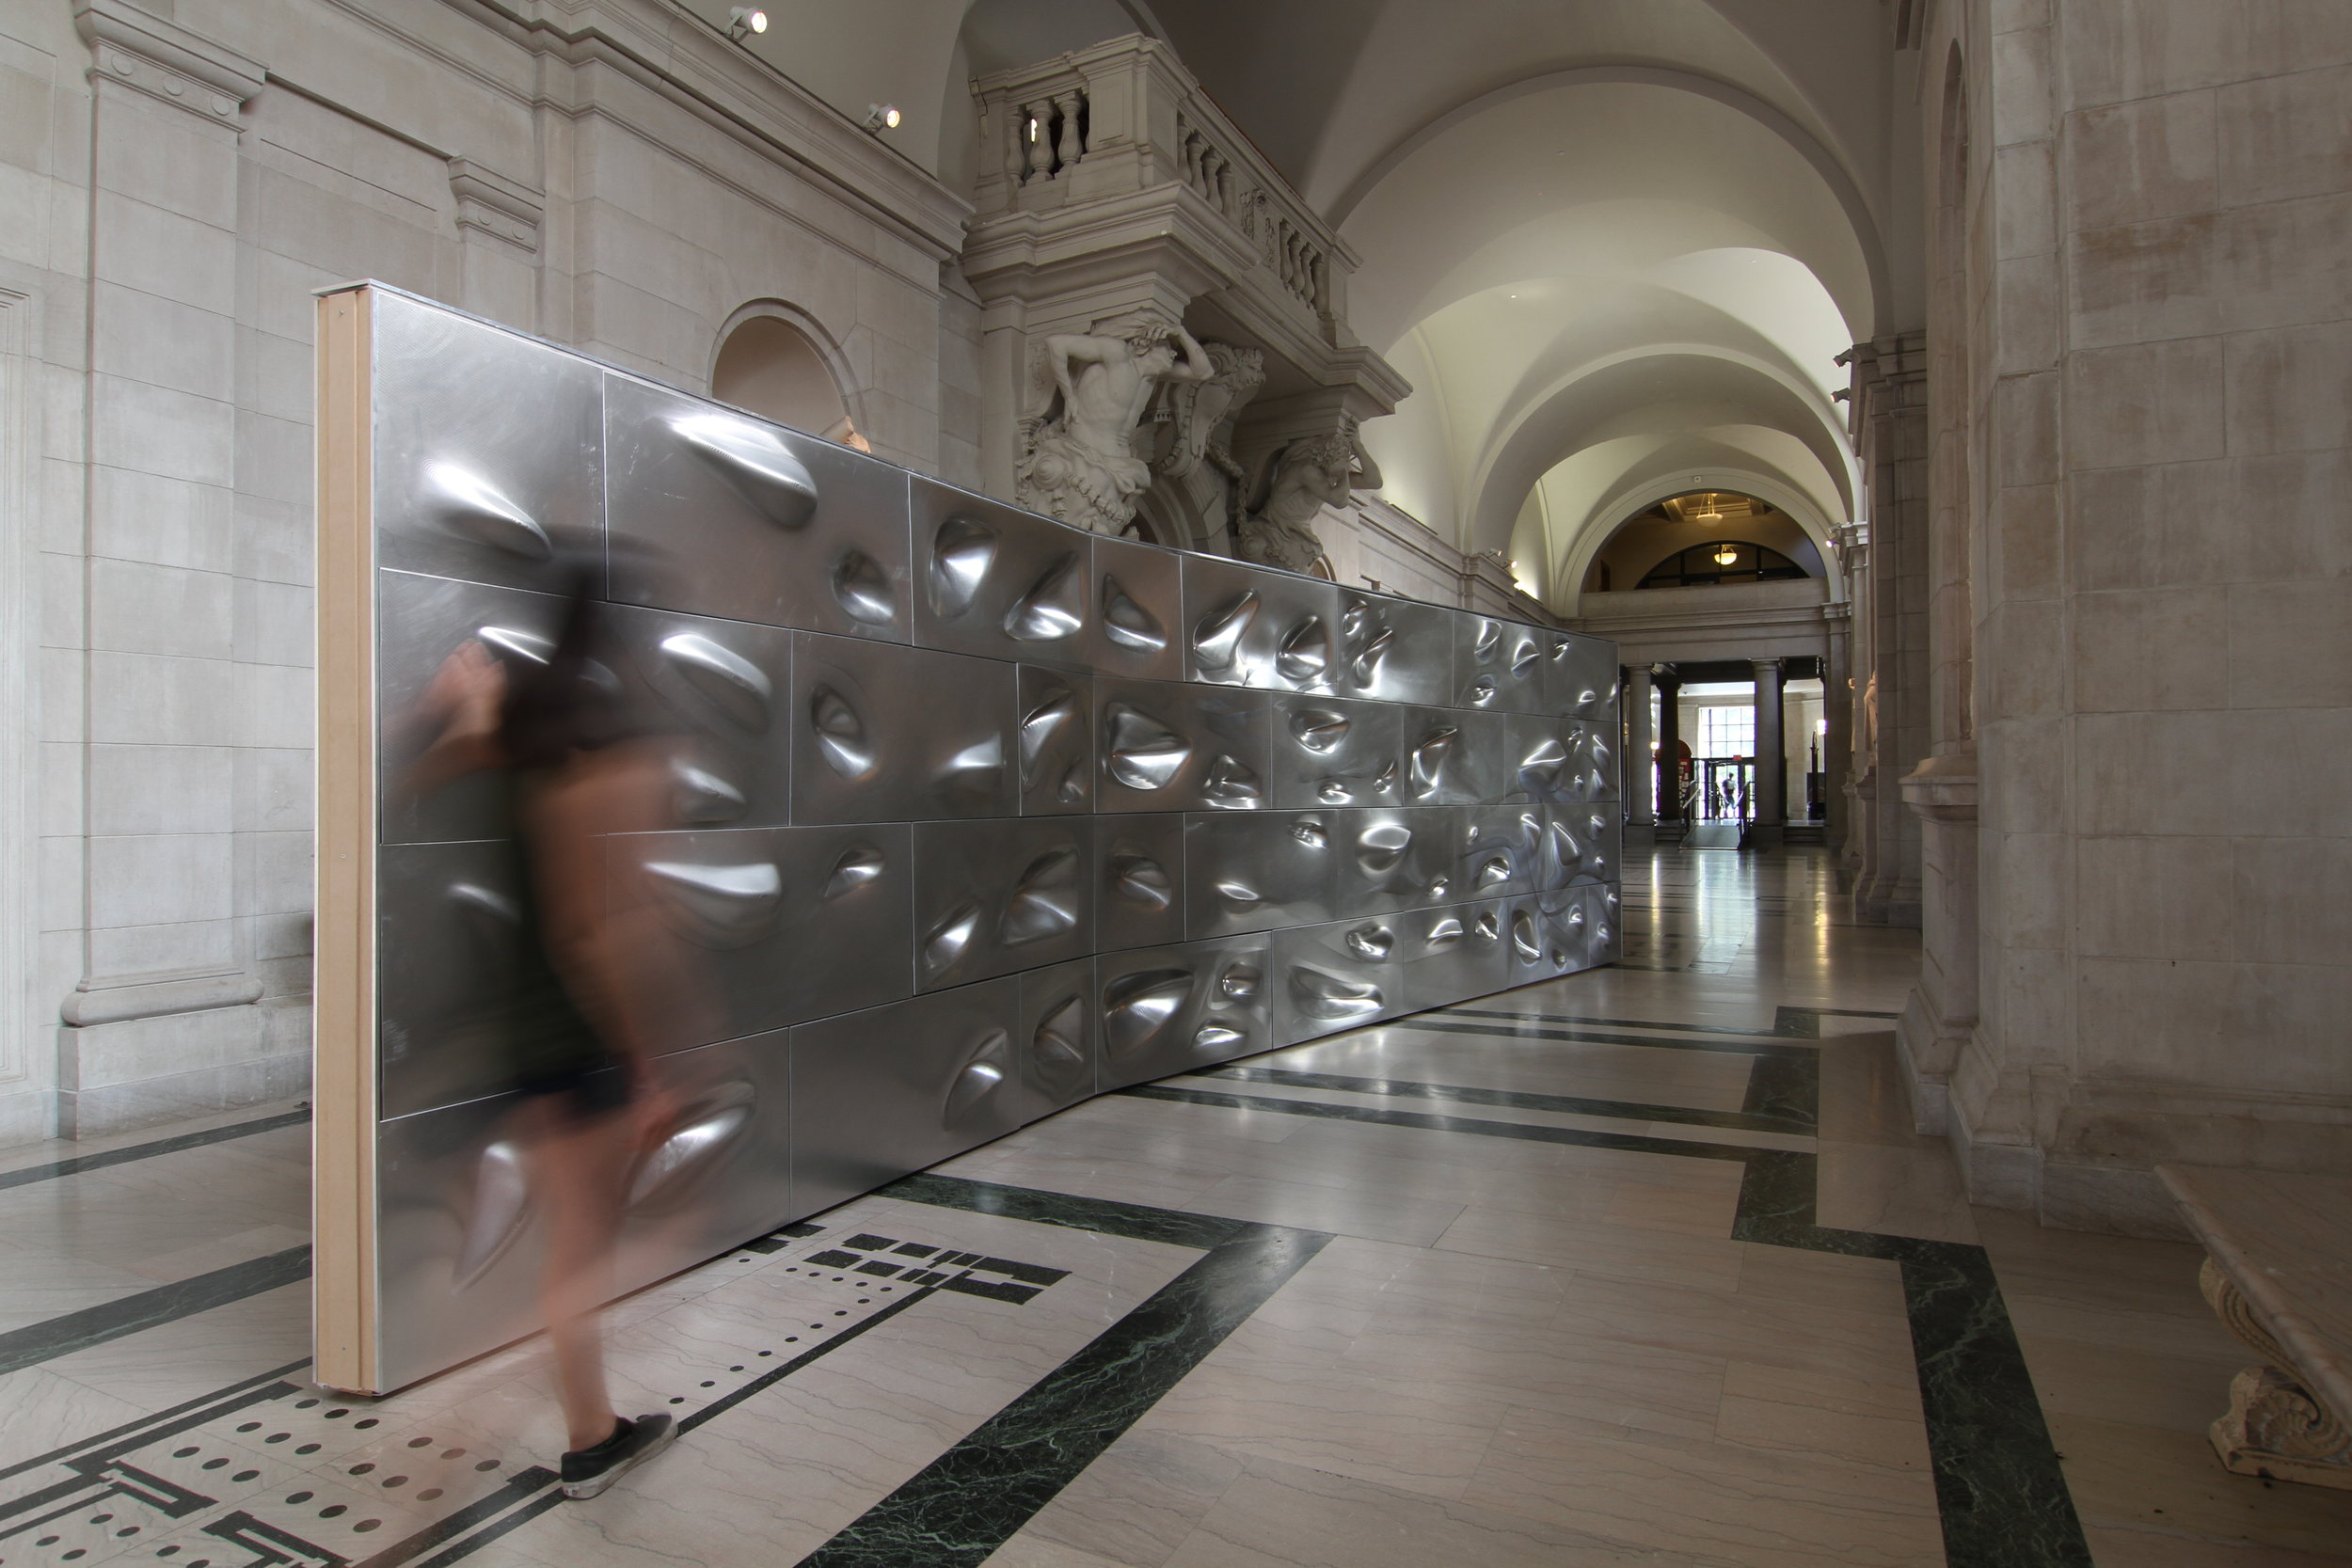 Installation // Photograph by Anthony Nitche